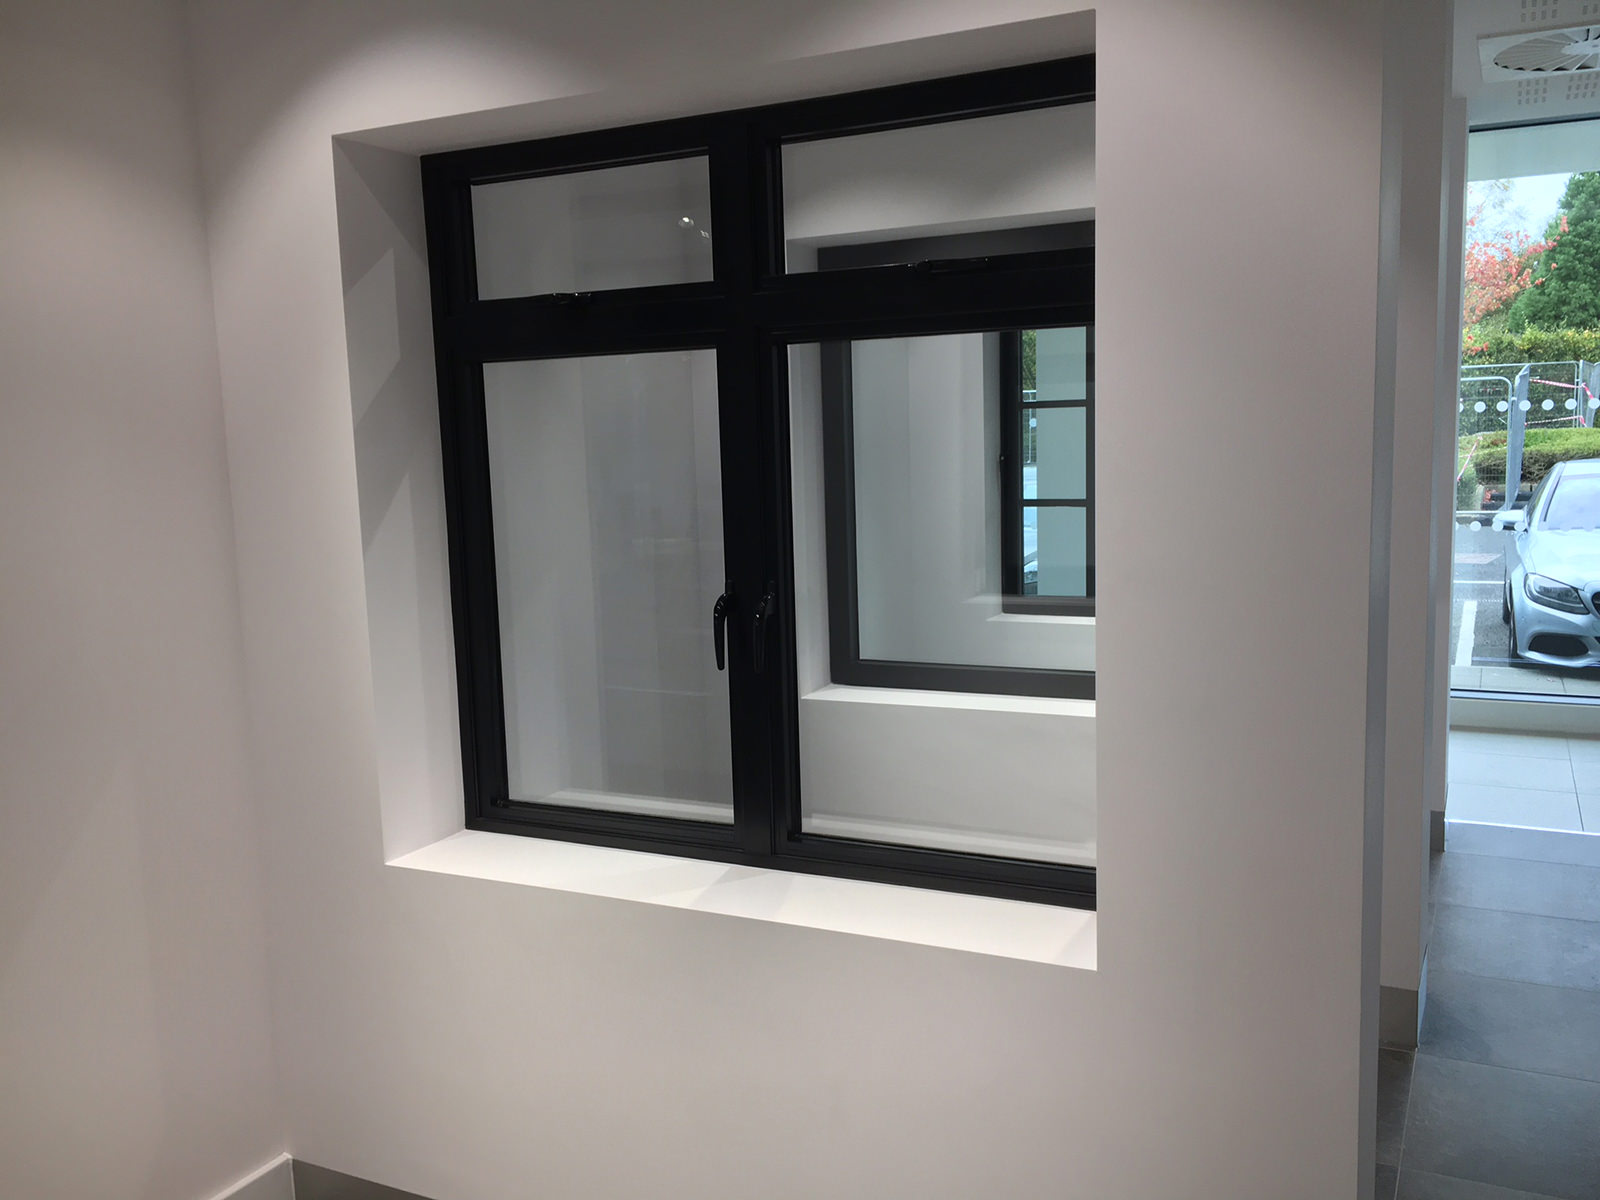 Aluminium Gallery Kingfisher Windows